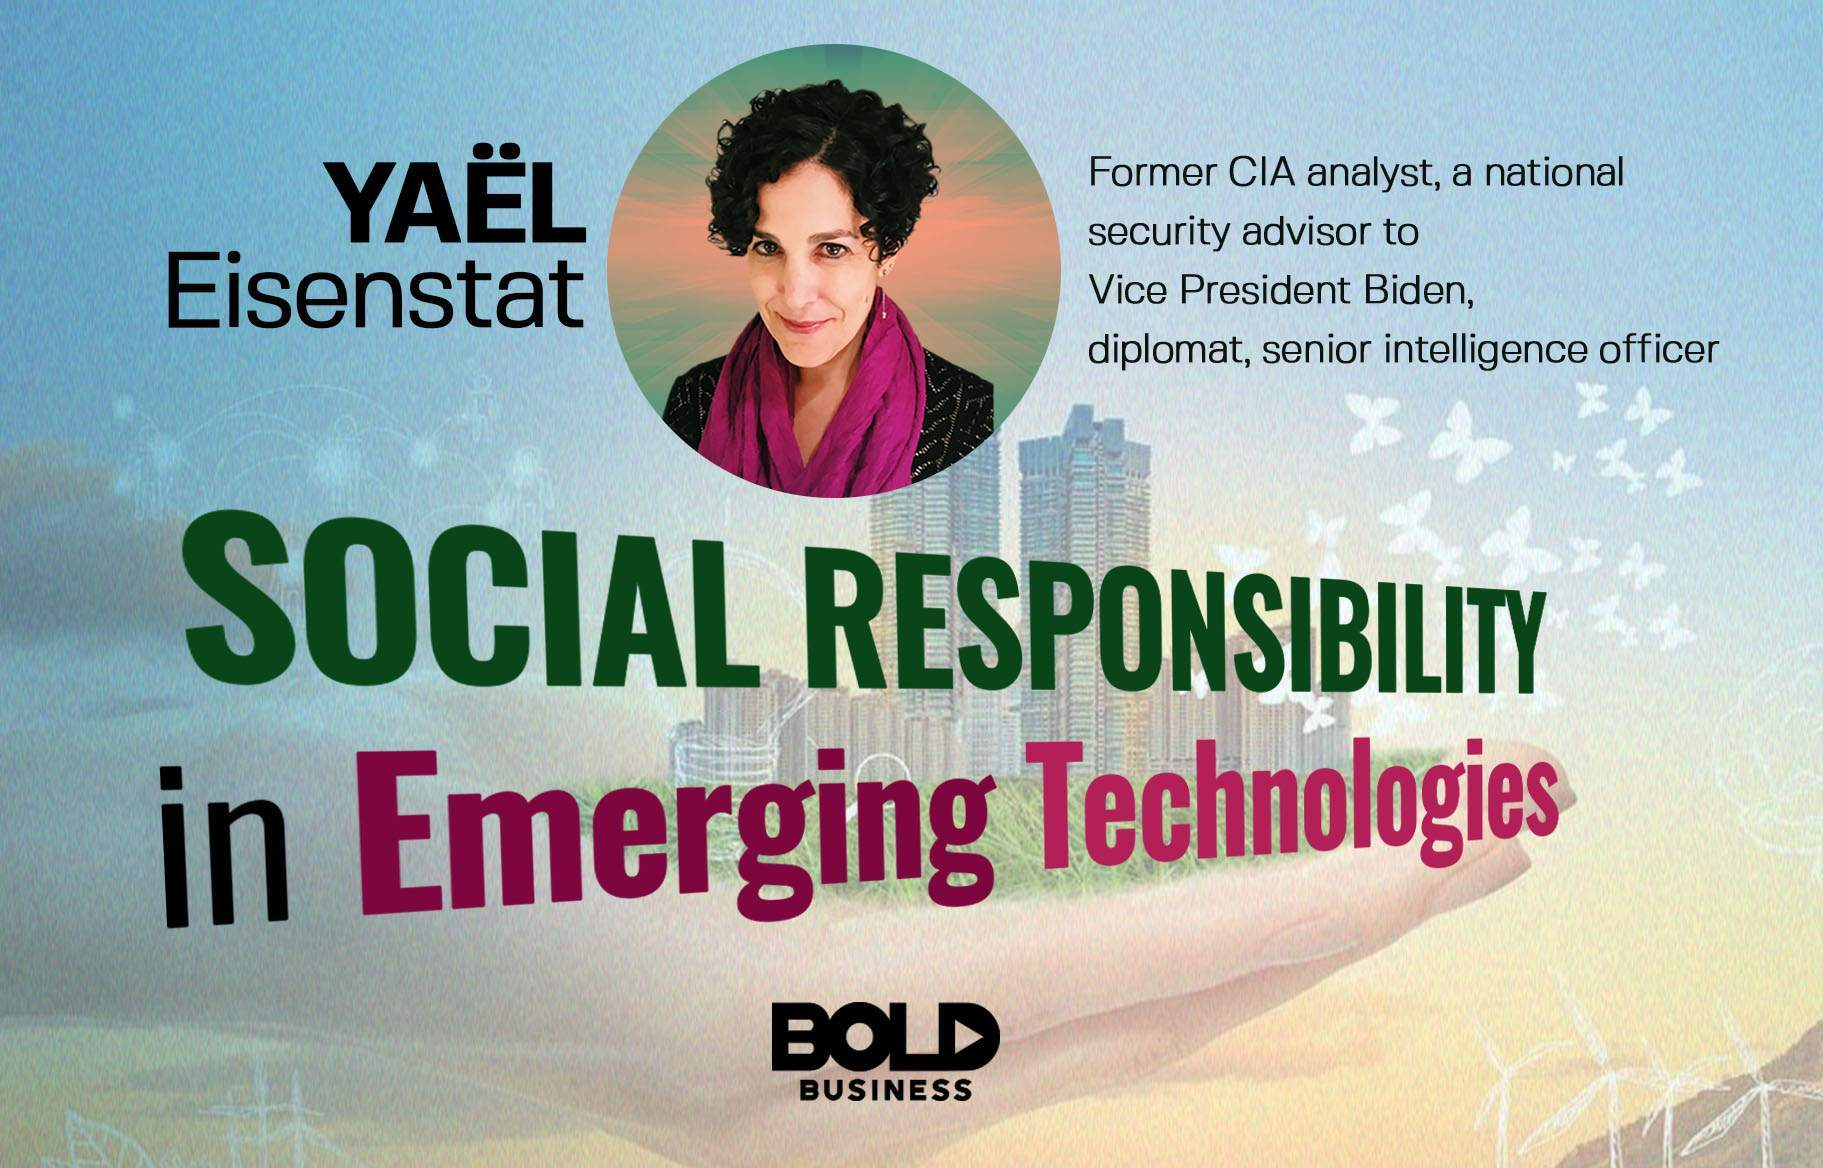 Yaël Eisenstat discusses Social Responsibility in Emerging Technologies